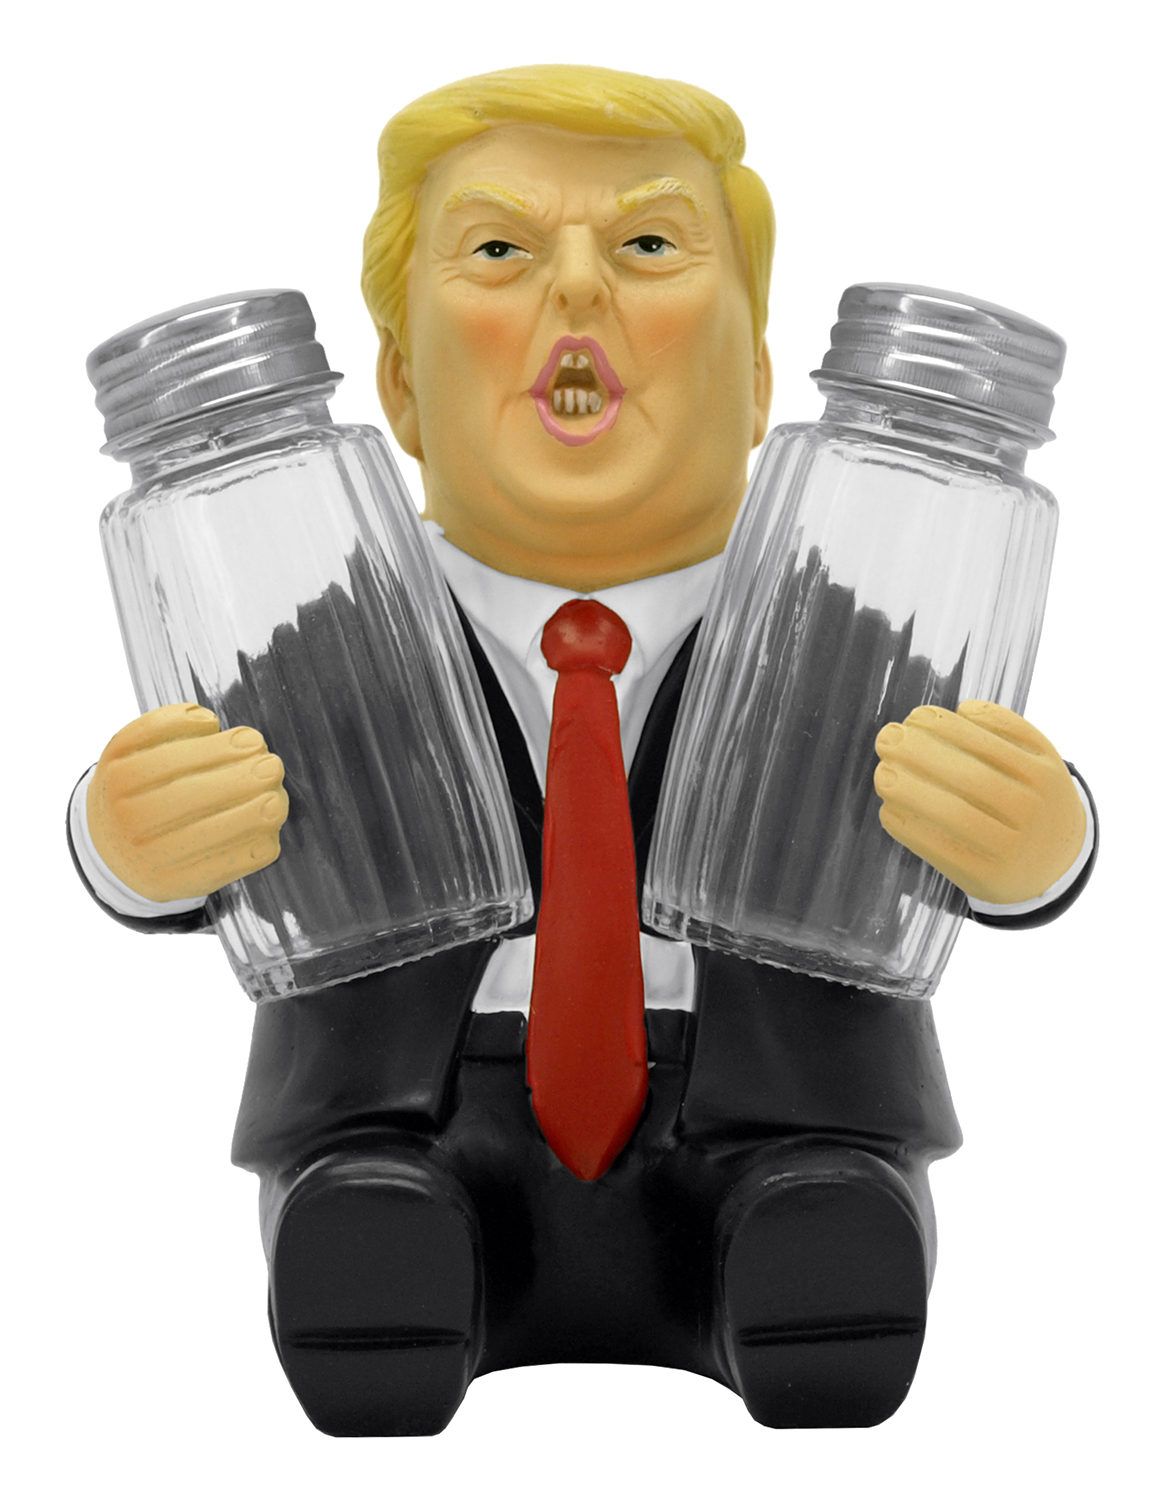 6.38 in Make Flavor Great Again - Trump Salt and Pepper Shaker Holder